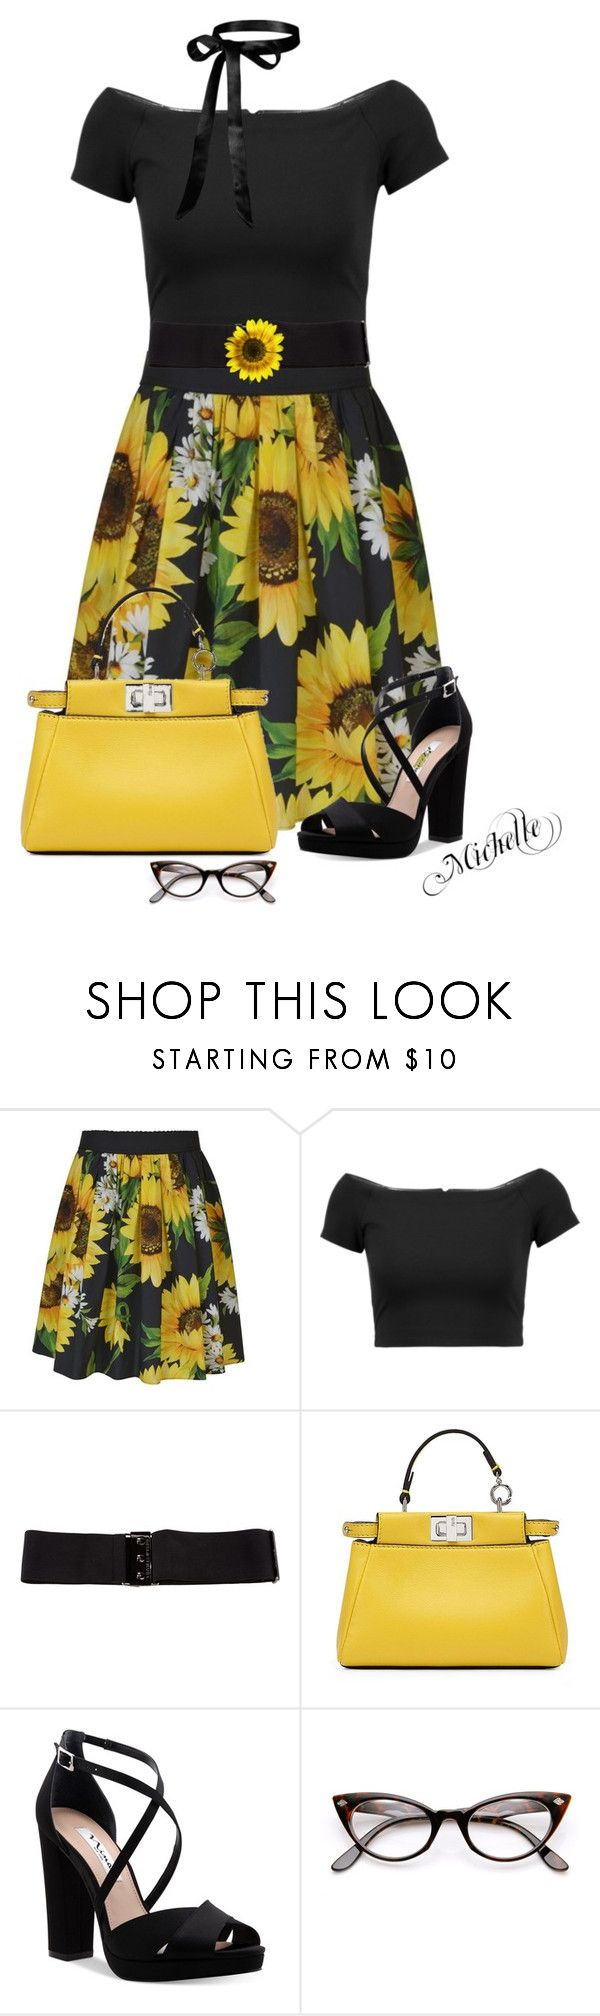 """""""Flower Power"""" by michellesherrill ❤ liked on Polyvore featuring Alice by Temperley, Alice + Olivia, Thomas Wylde, Fendi and Nina"""